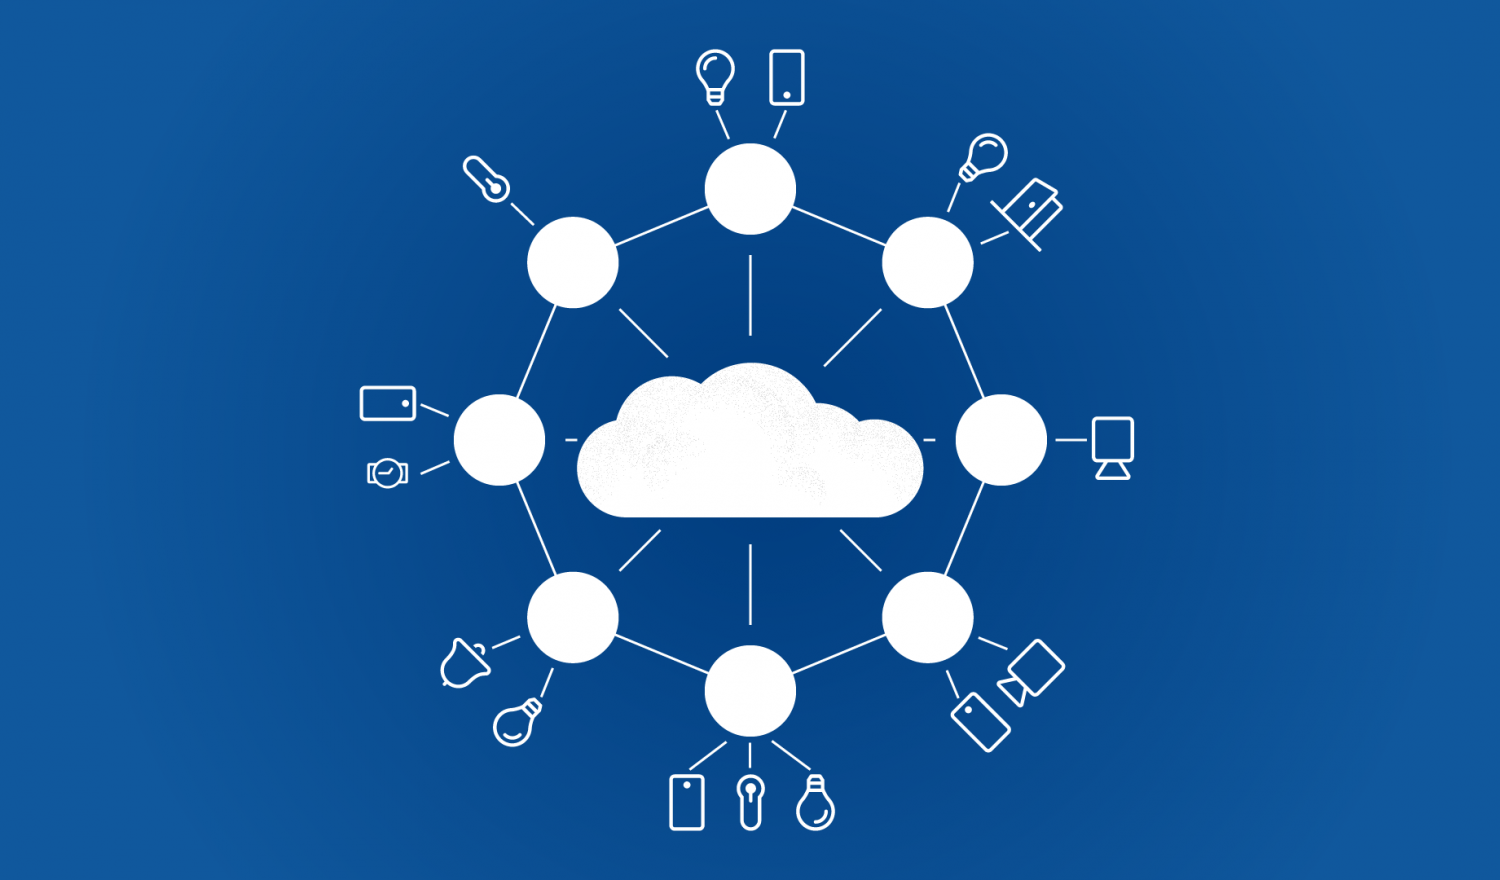 The cloud in the center fanning out to edge nodes and edge devices